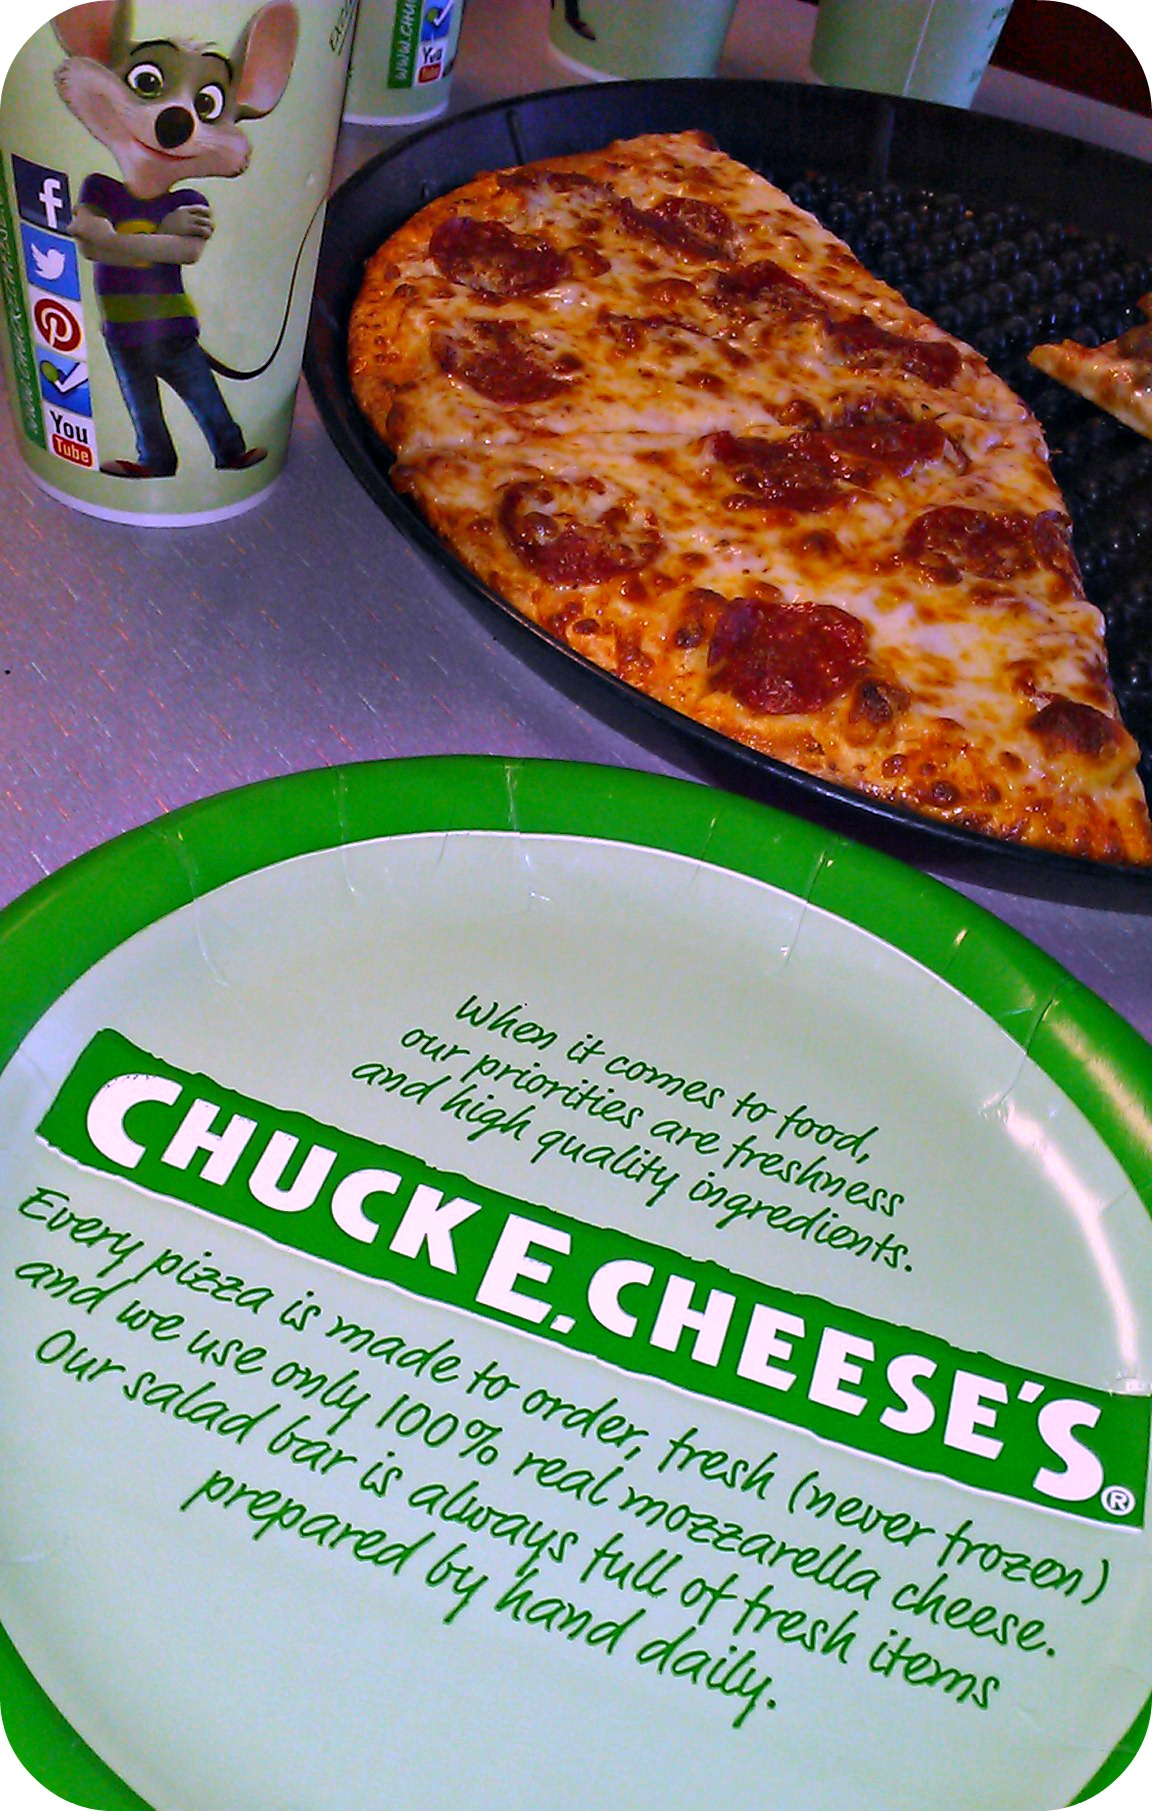 The latest Chuck E Cheese's menu prices for you. Chuck E. Cheese's is a chain of family entertainment centers in the U.S. that offers wholesome family fun in an open environment. The kids can stay busy for hours playing & climbing the attractions or spending their tokens on video believed-entrepreneur.ml for their pizza, Chuck E. Cheese's also serves.